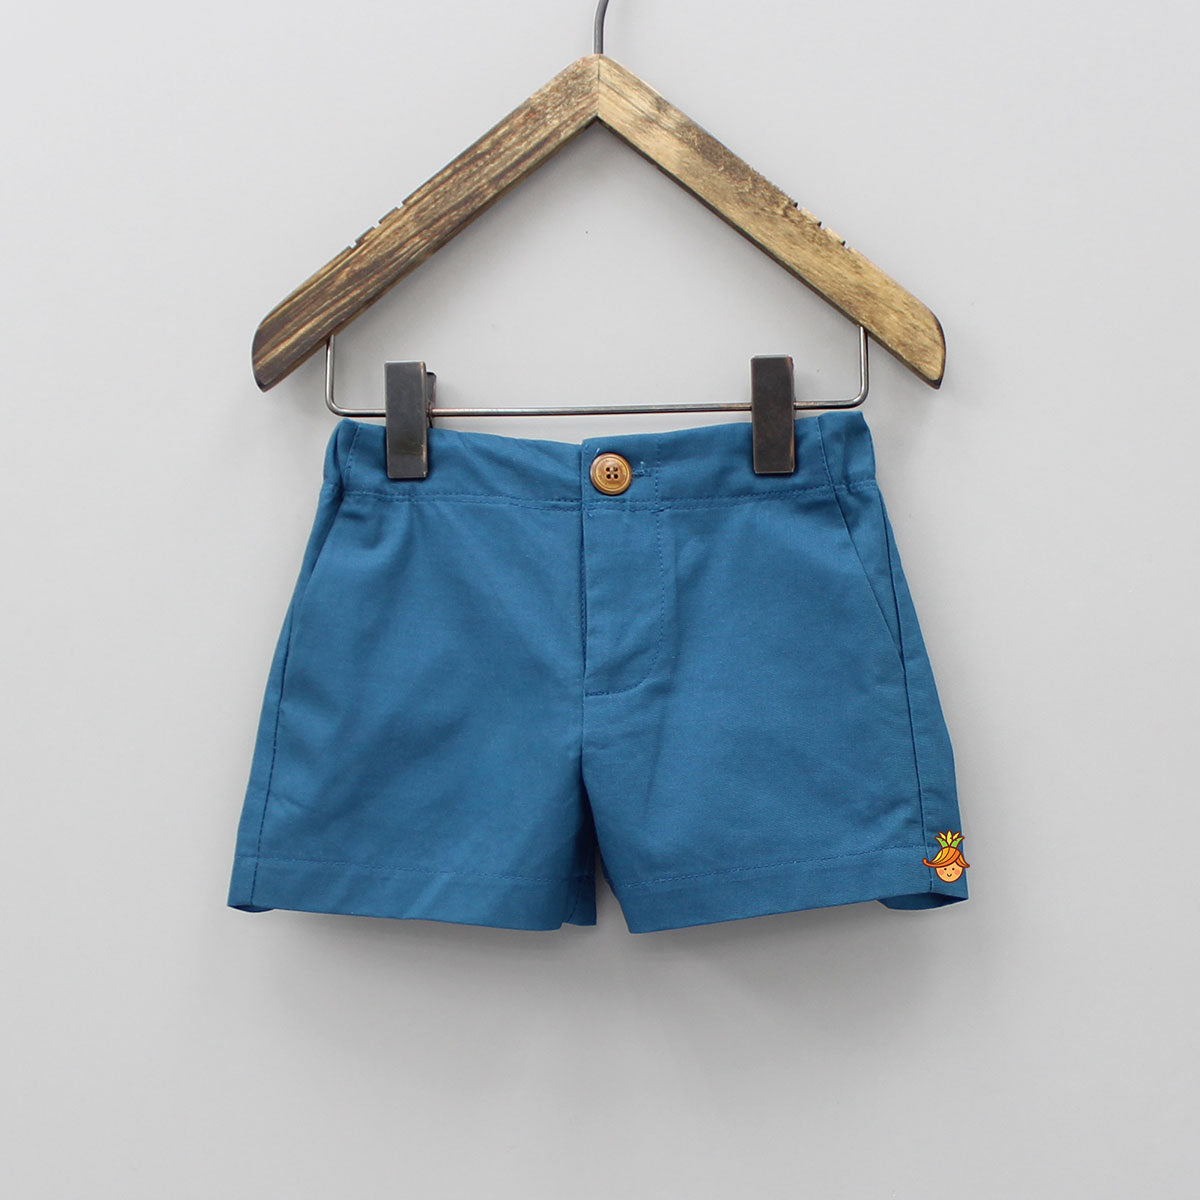 Teal Blue Shorts